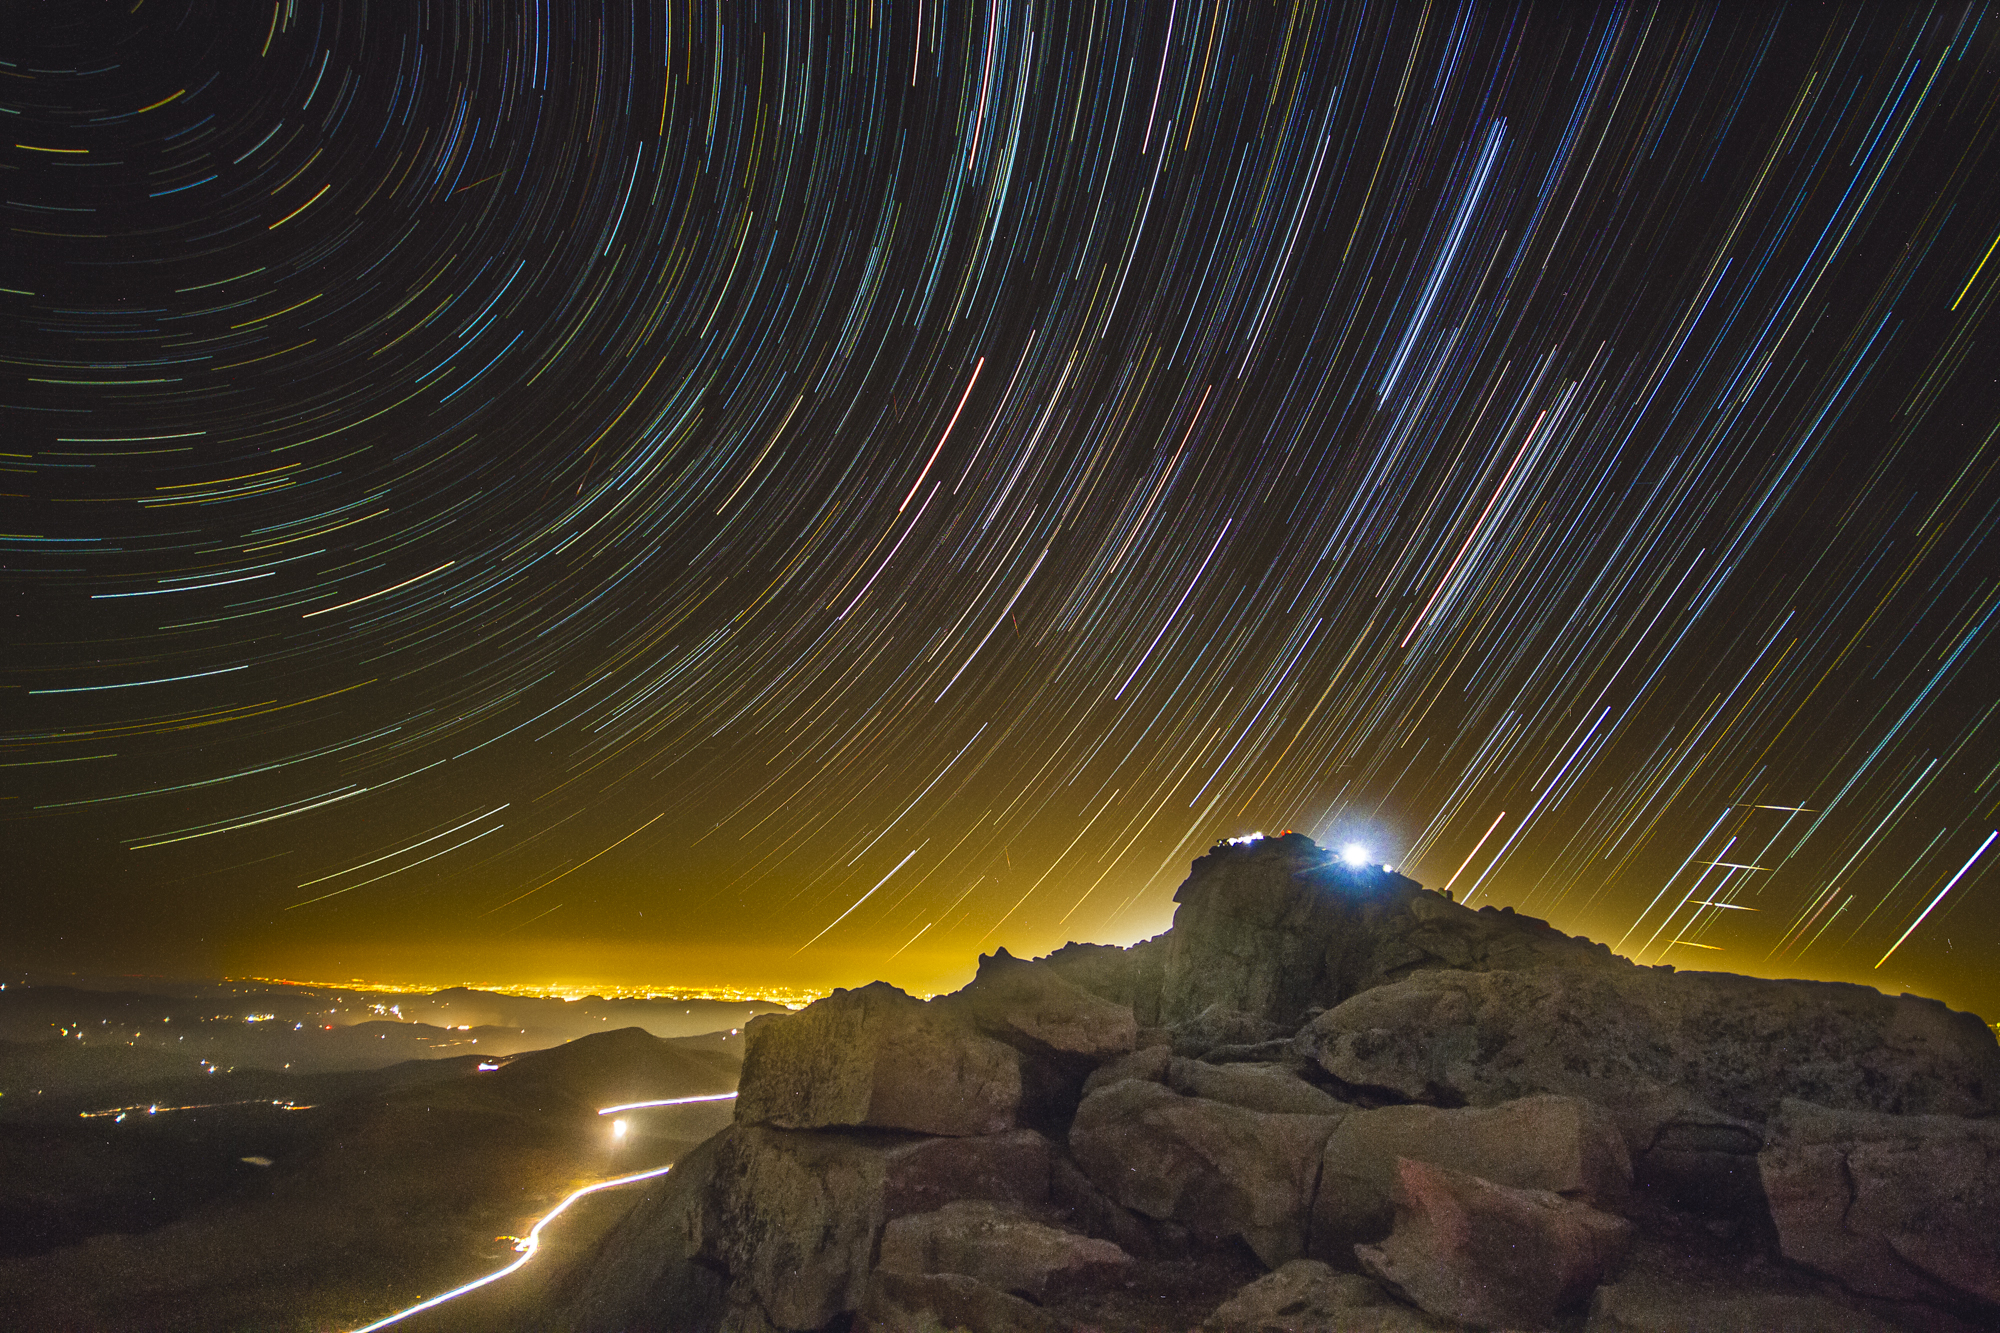 Mt. Evans meteor shower 2